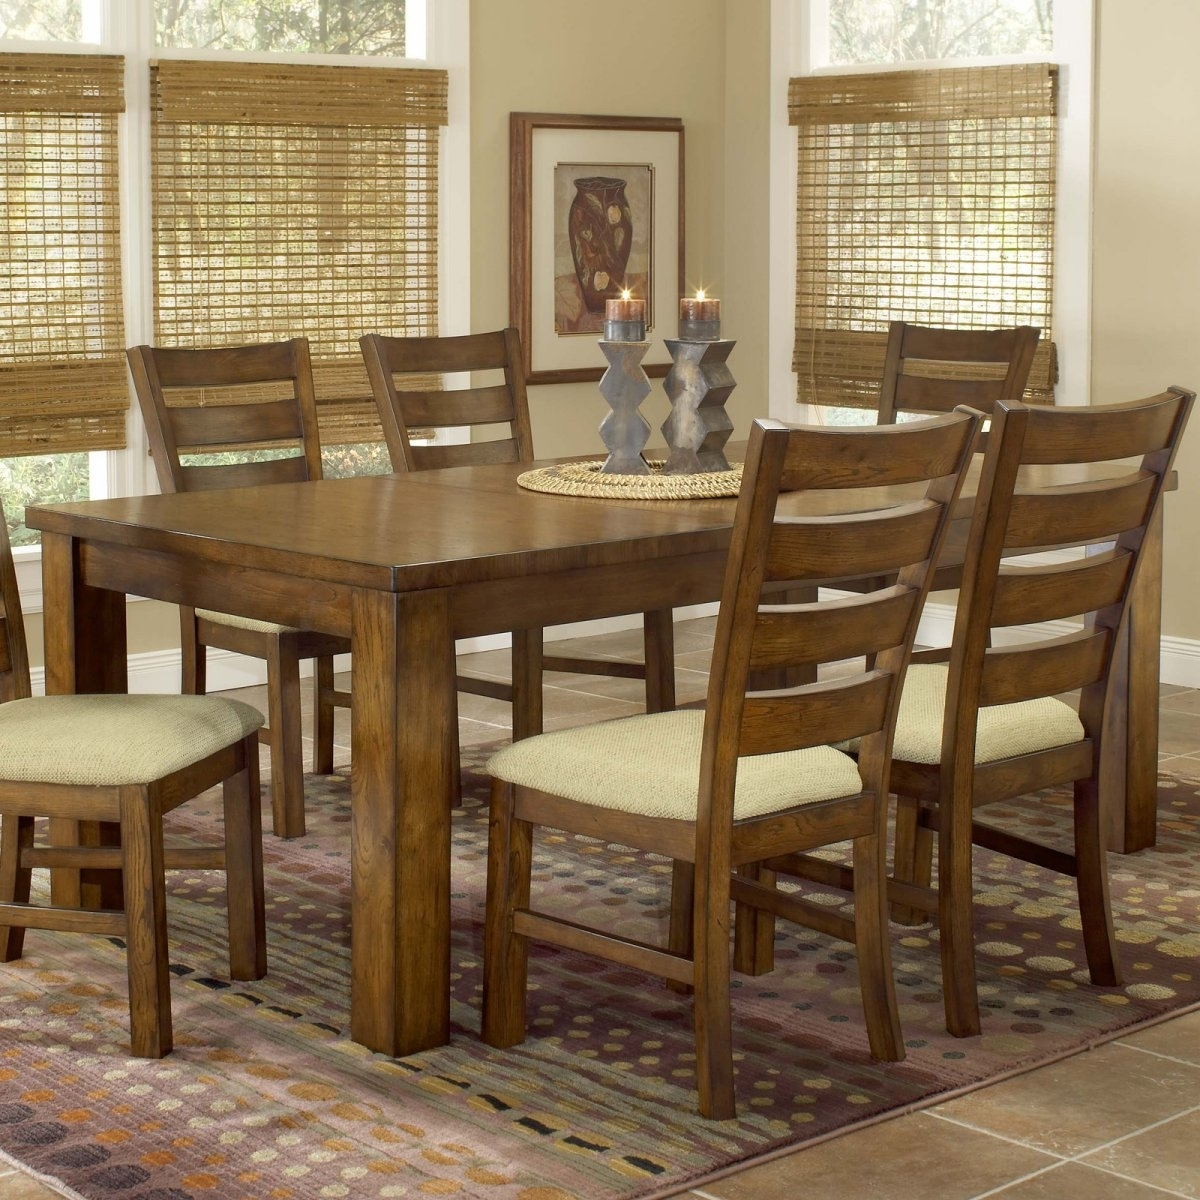 Homesfeed Within Dark Solid Wood Dining Tables (View 2 of 25)